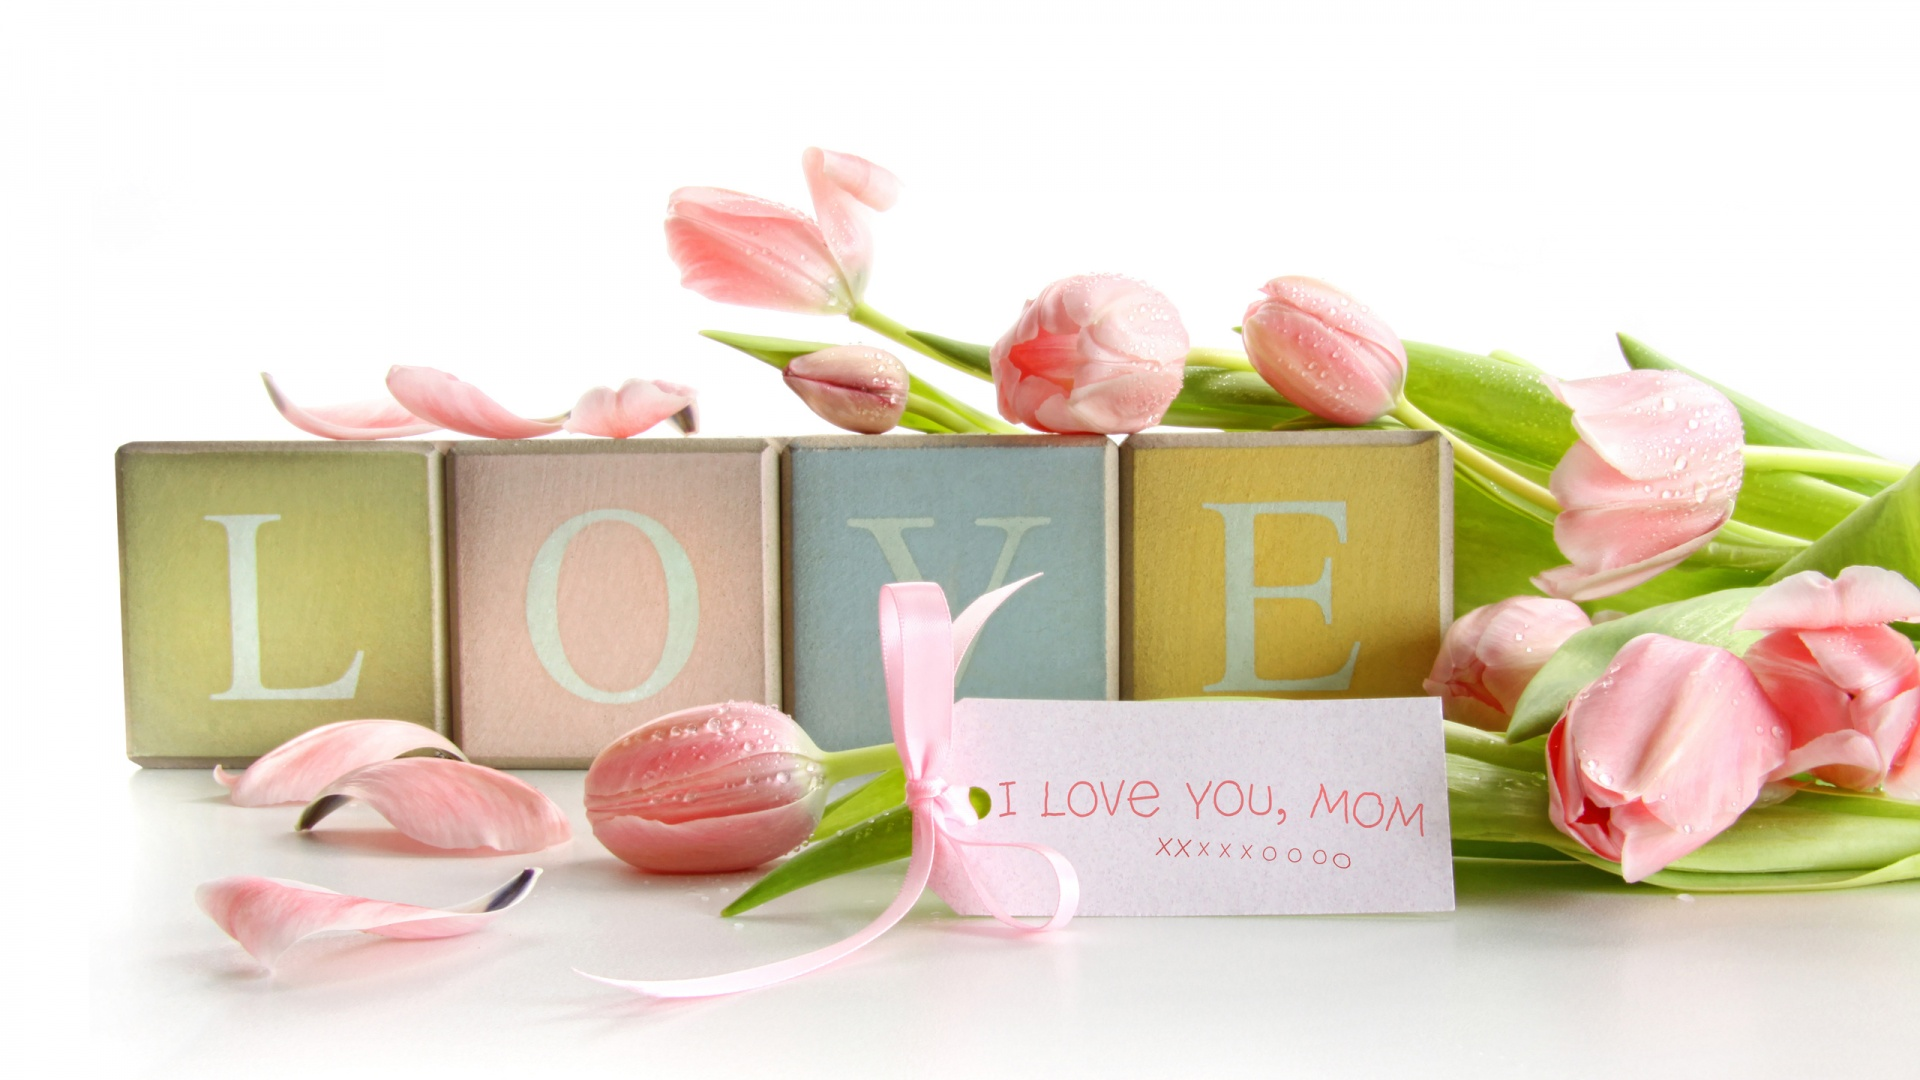 Mothers Day Desktop Background   Wallpaper High Definition High 1920x1080